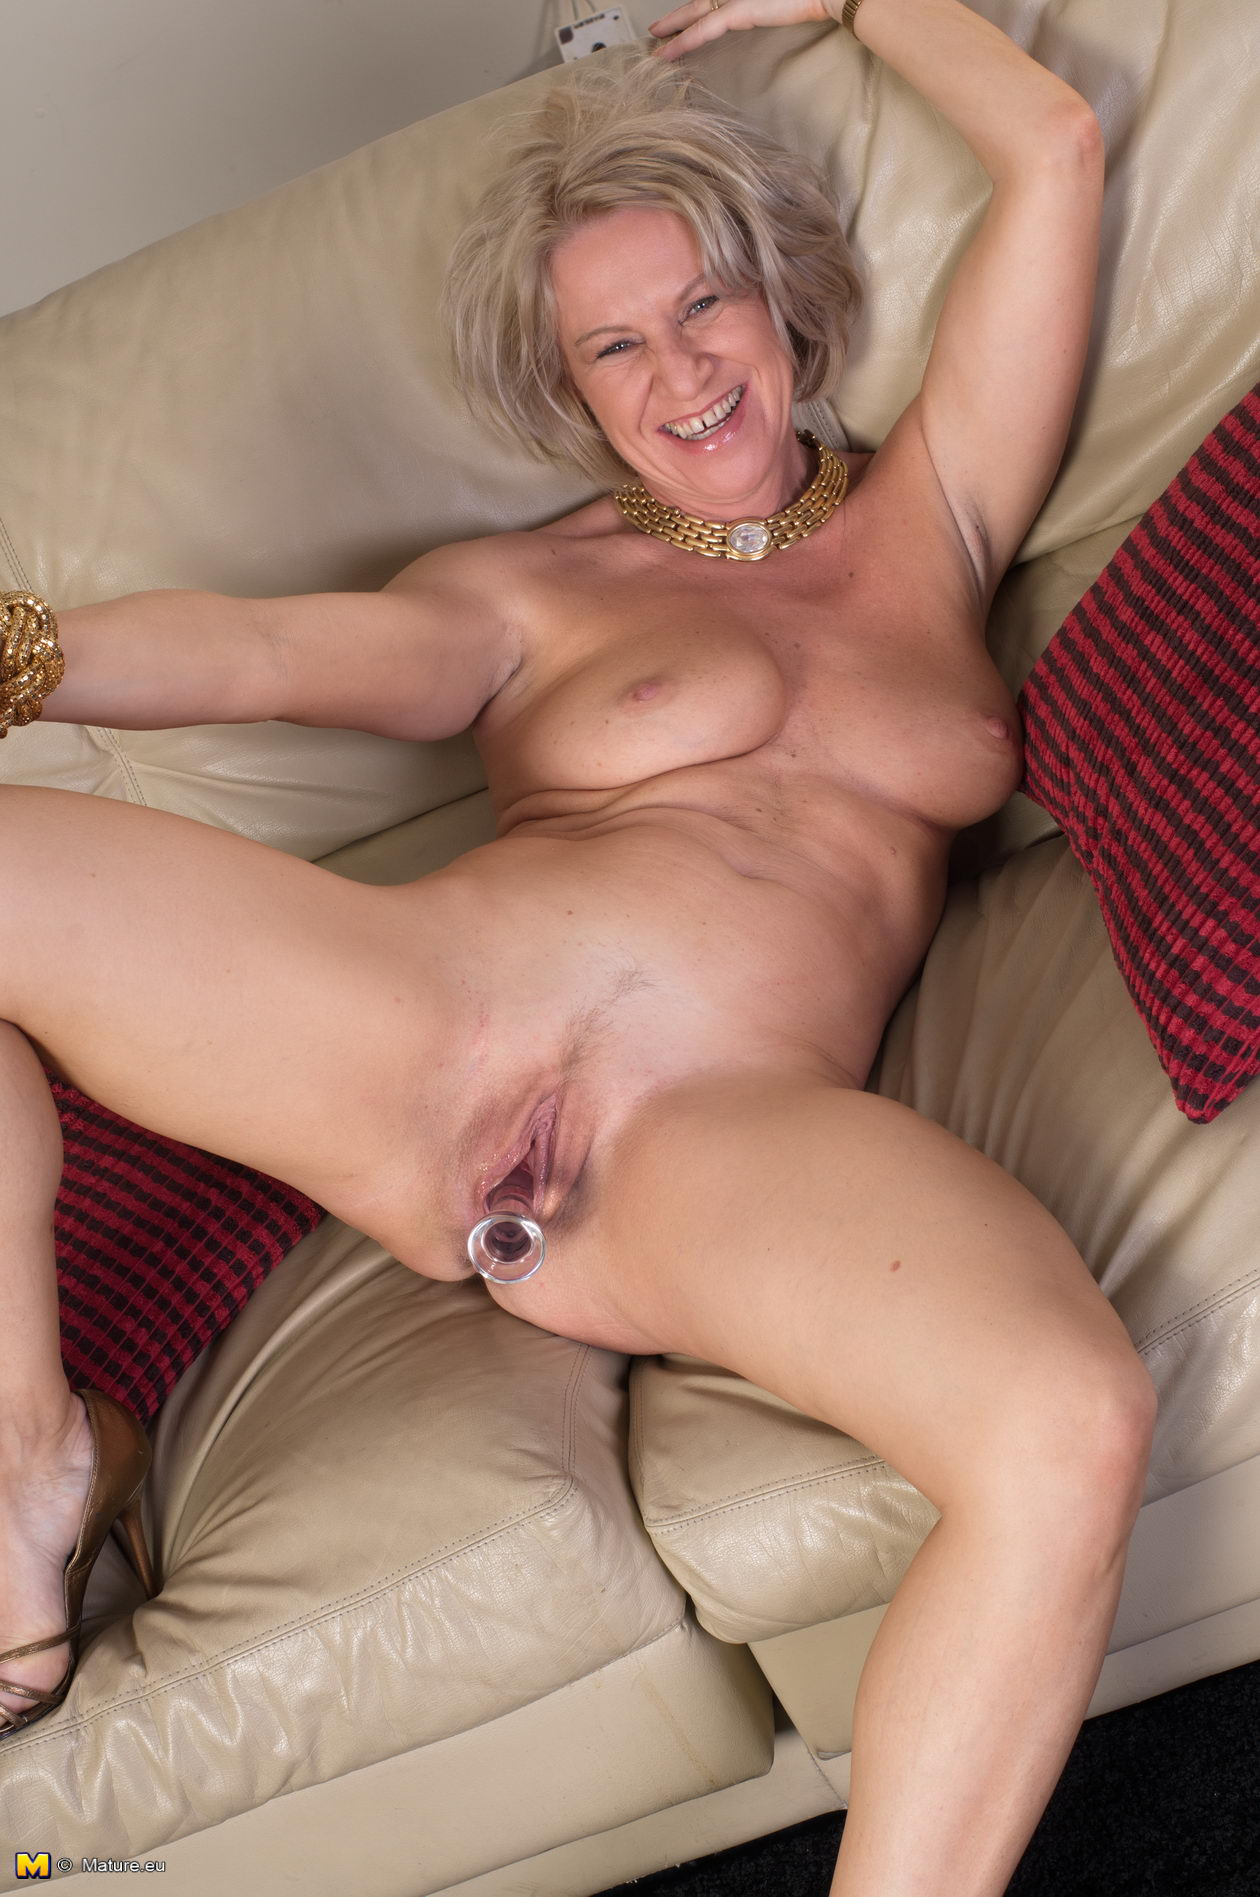 Older nudist fucking women